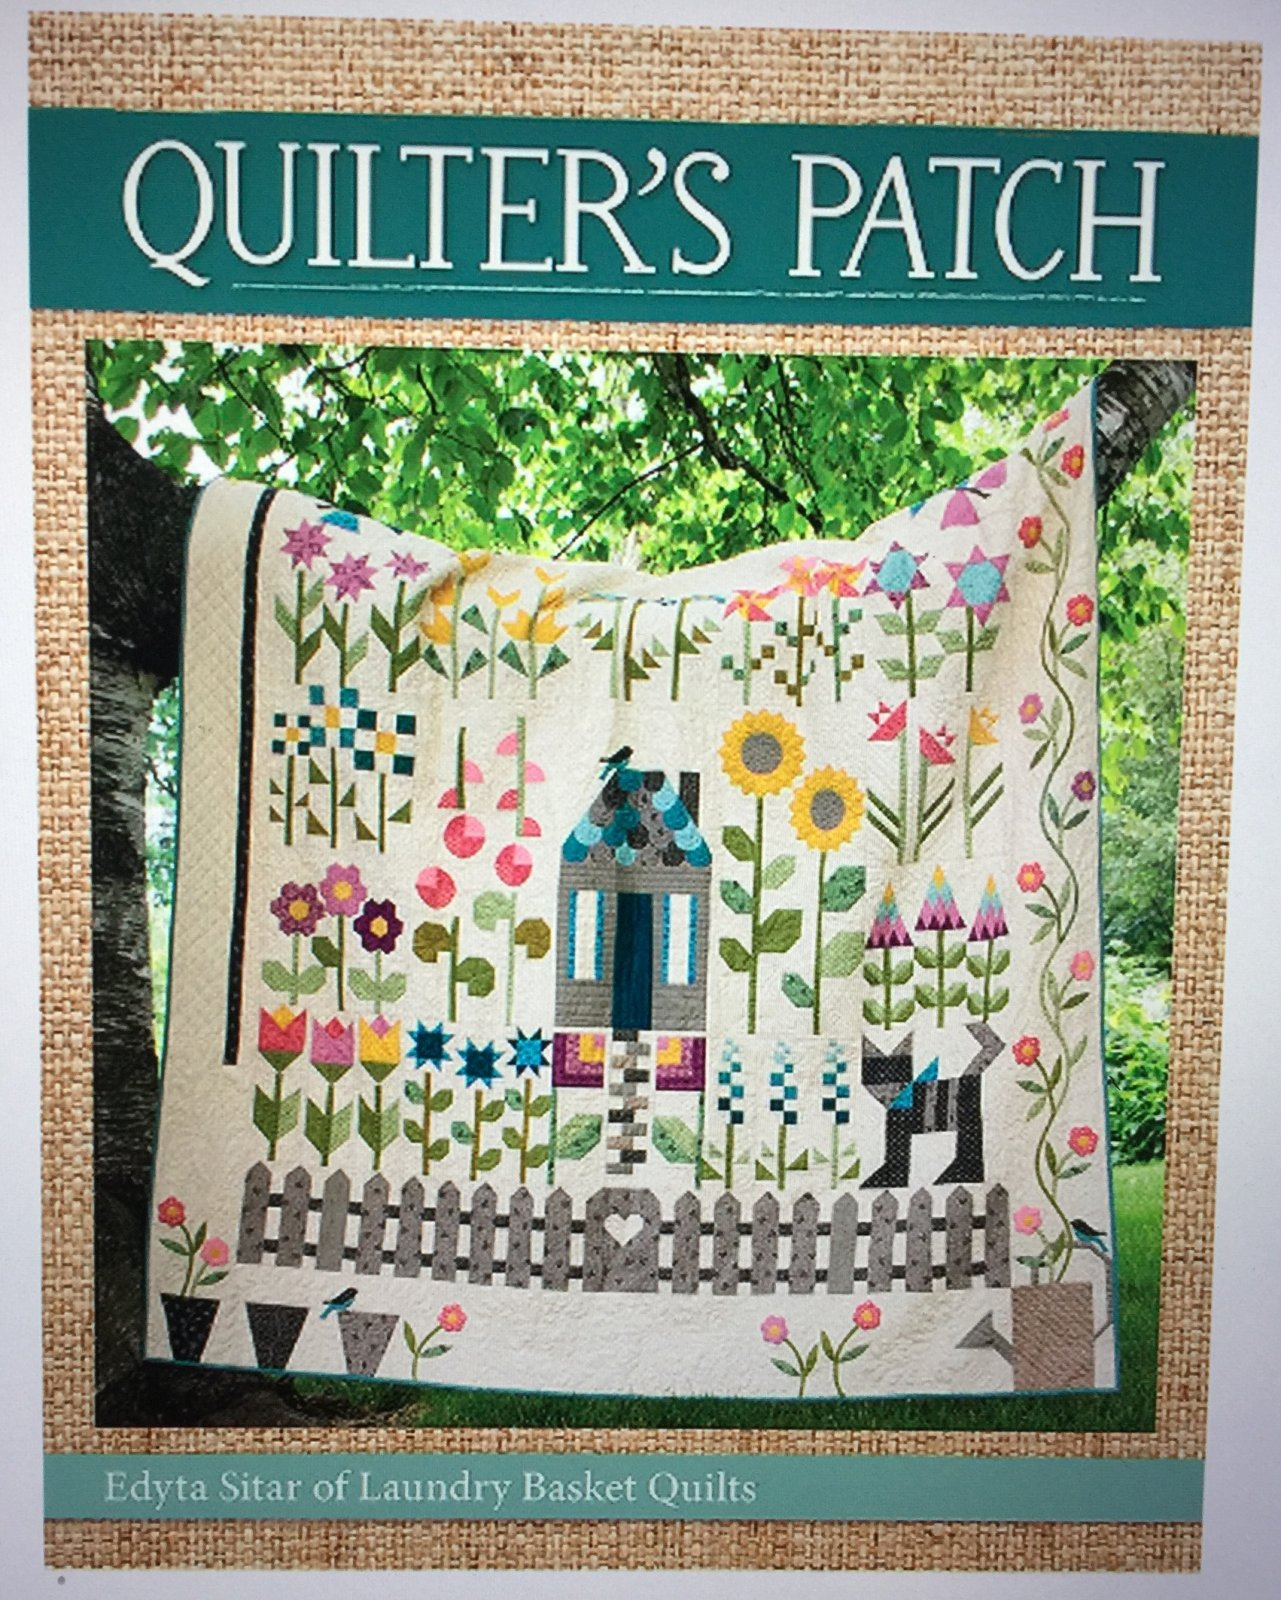 Quilter's Patch book by Laundry Basket Quilts